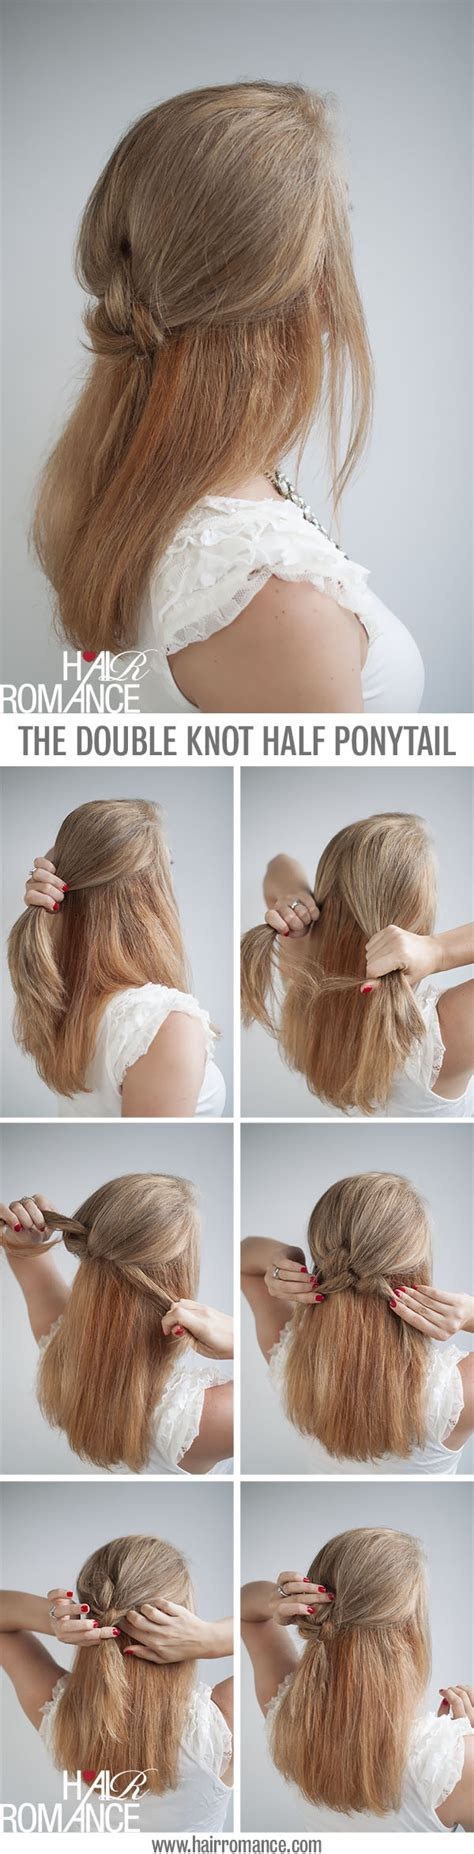 knot  average  ponytail hairstyle tutorial hair